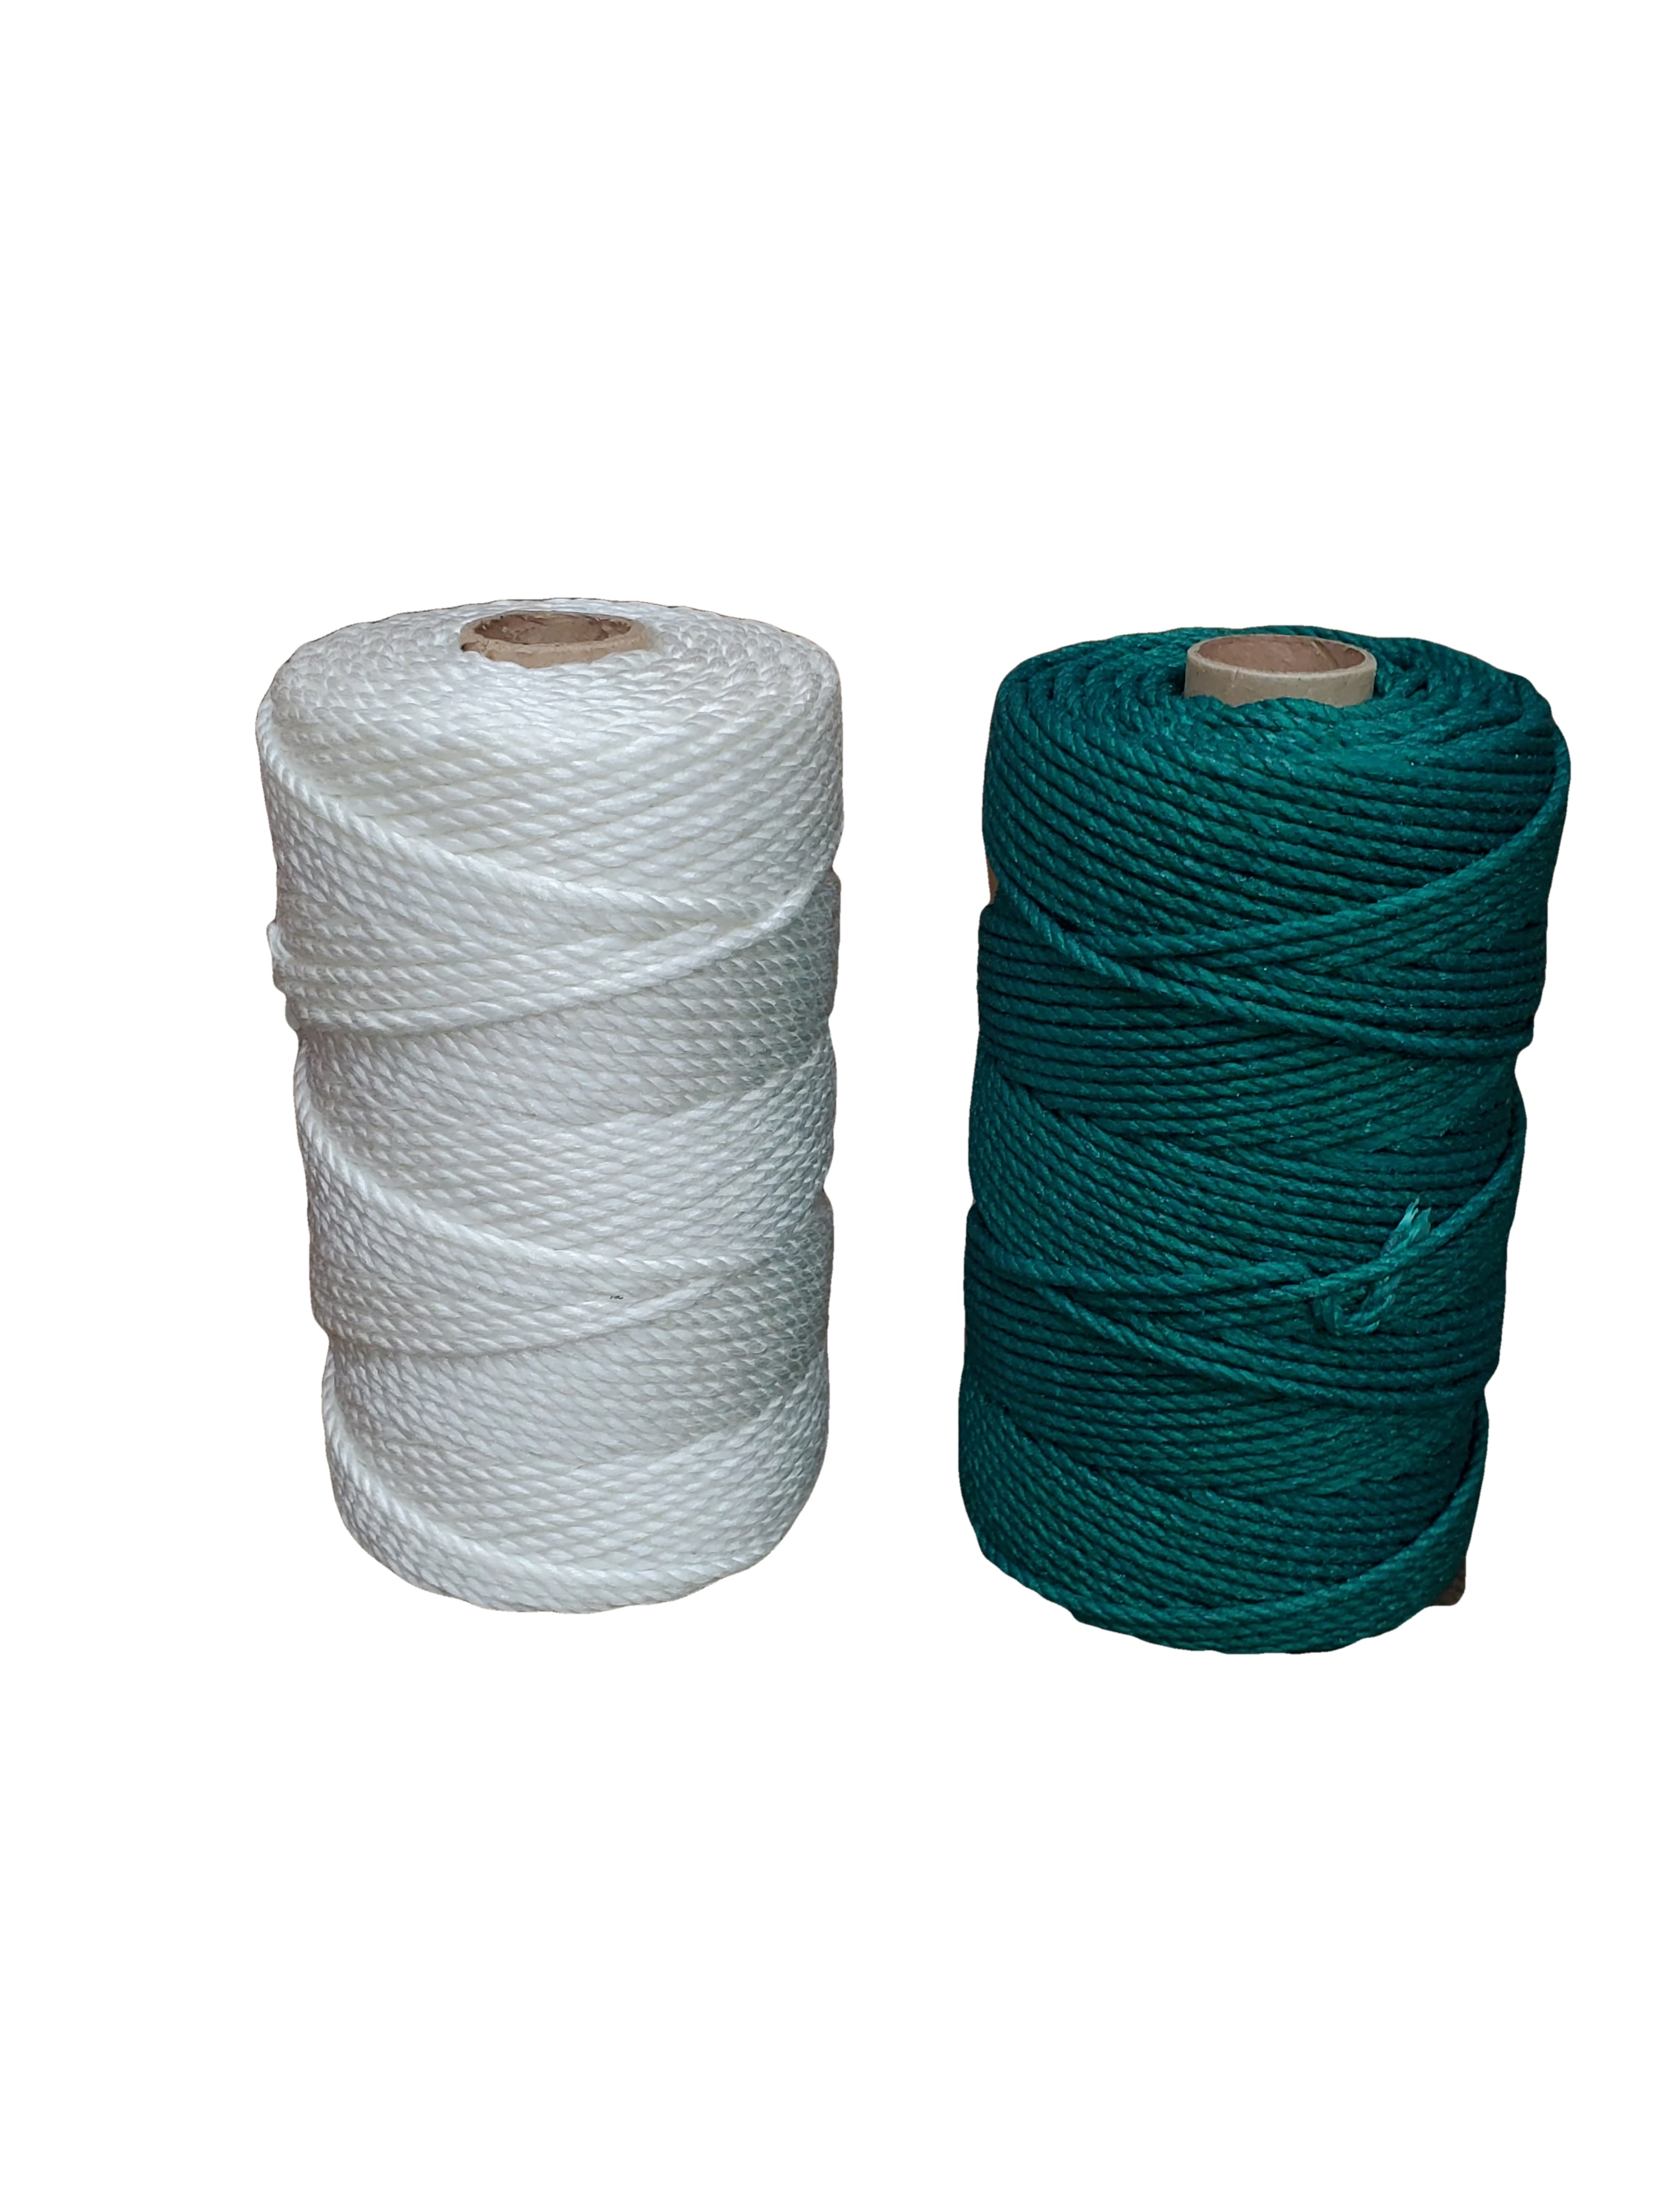 White Twisted Twine (1 Lbs)